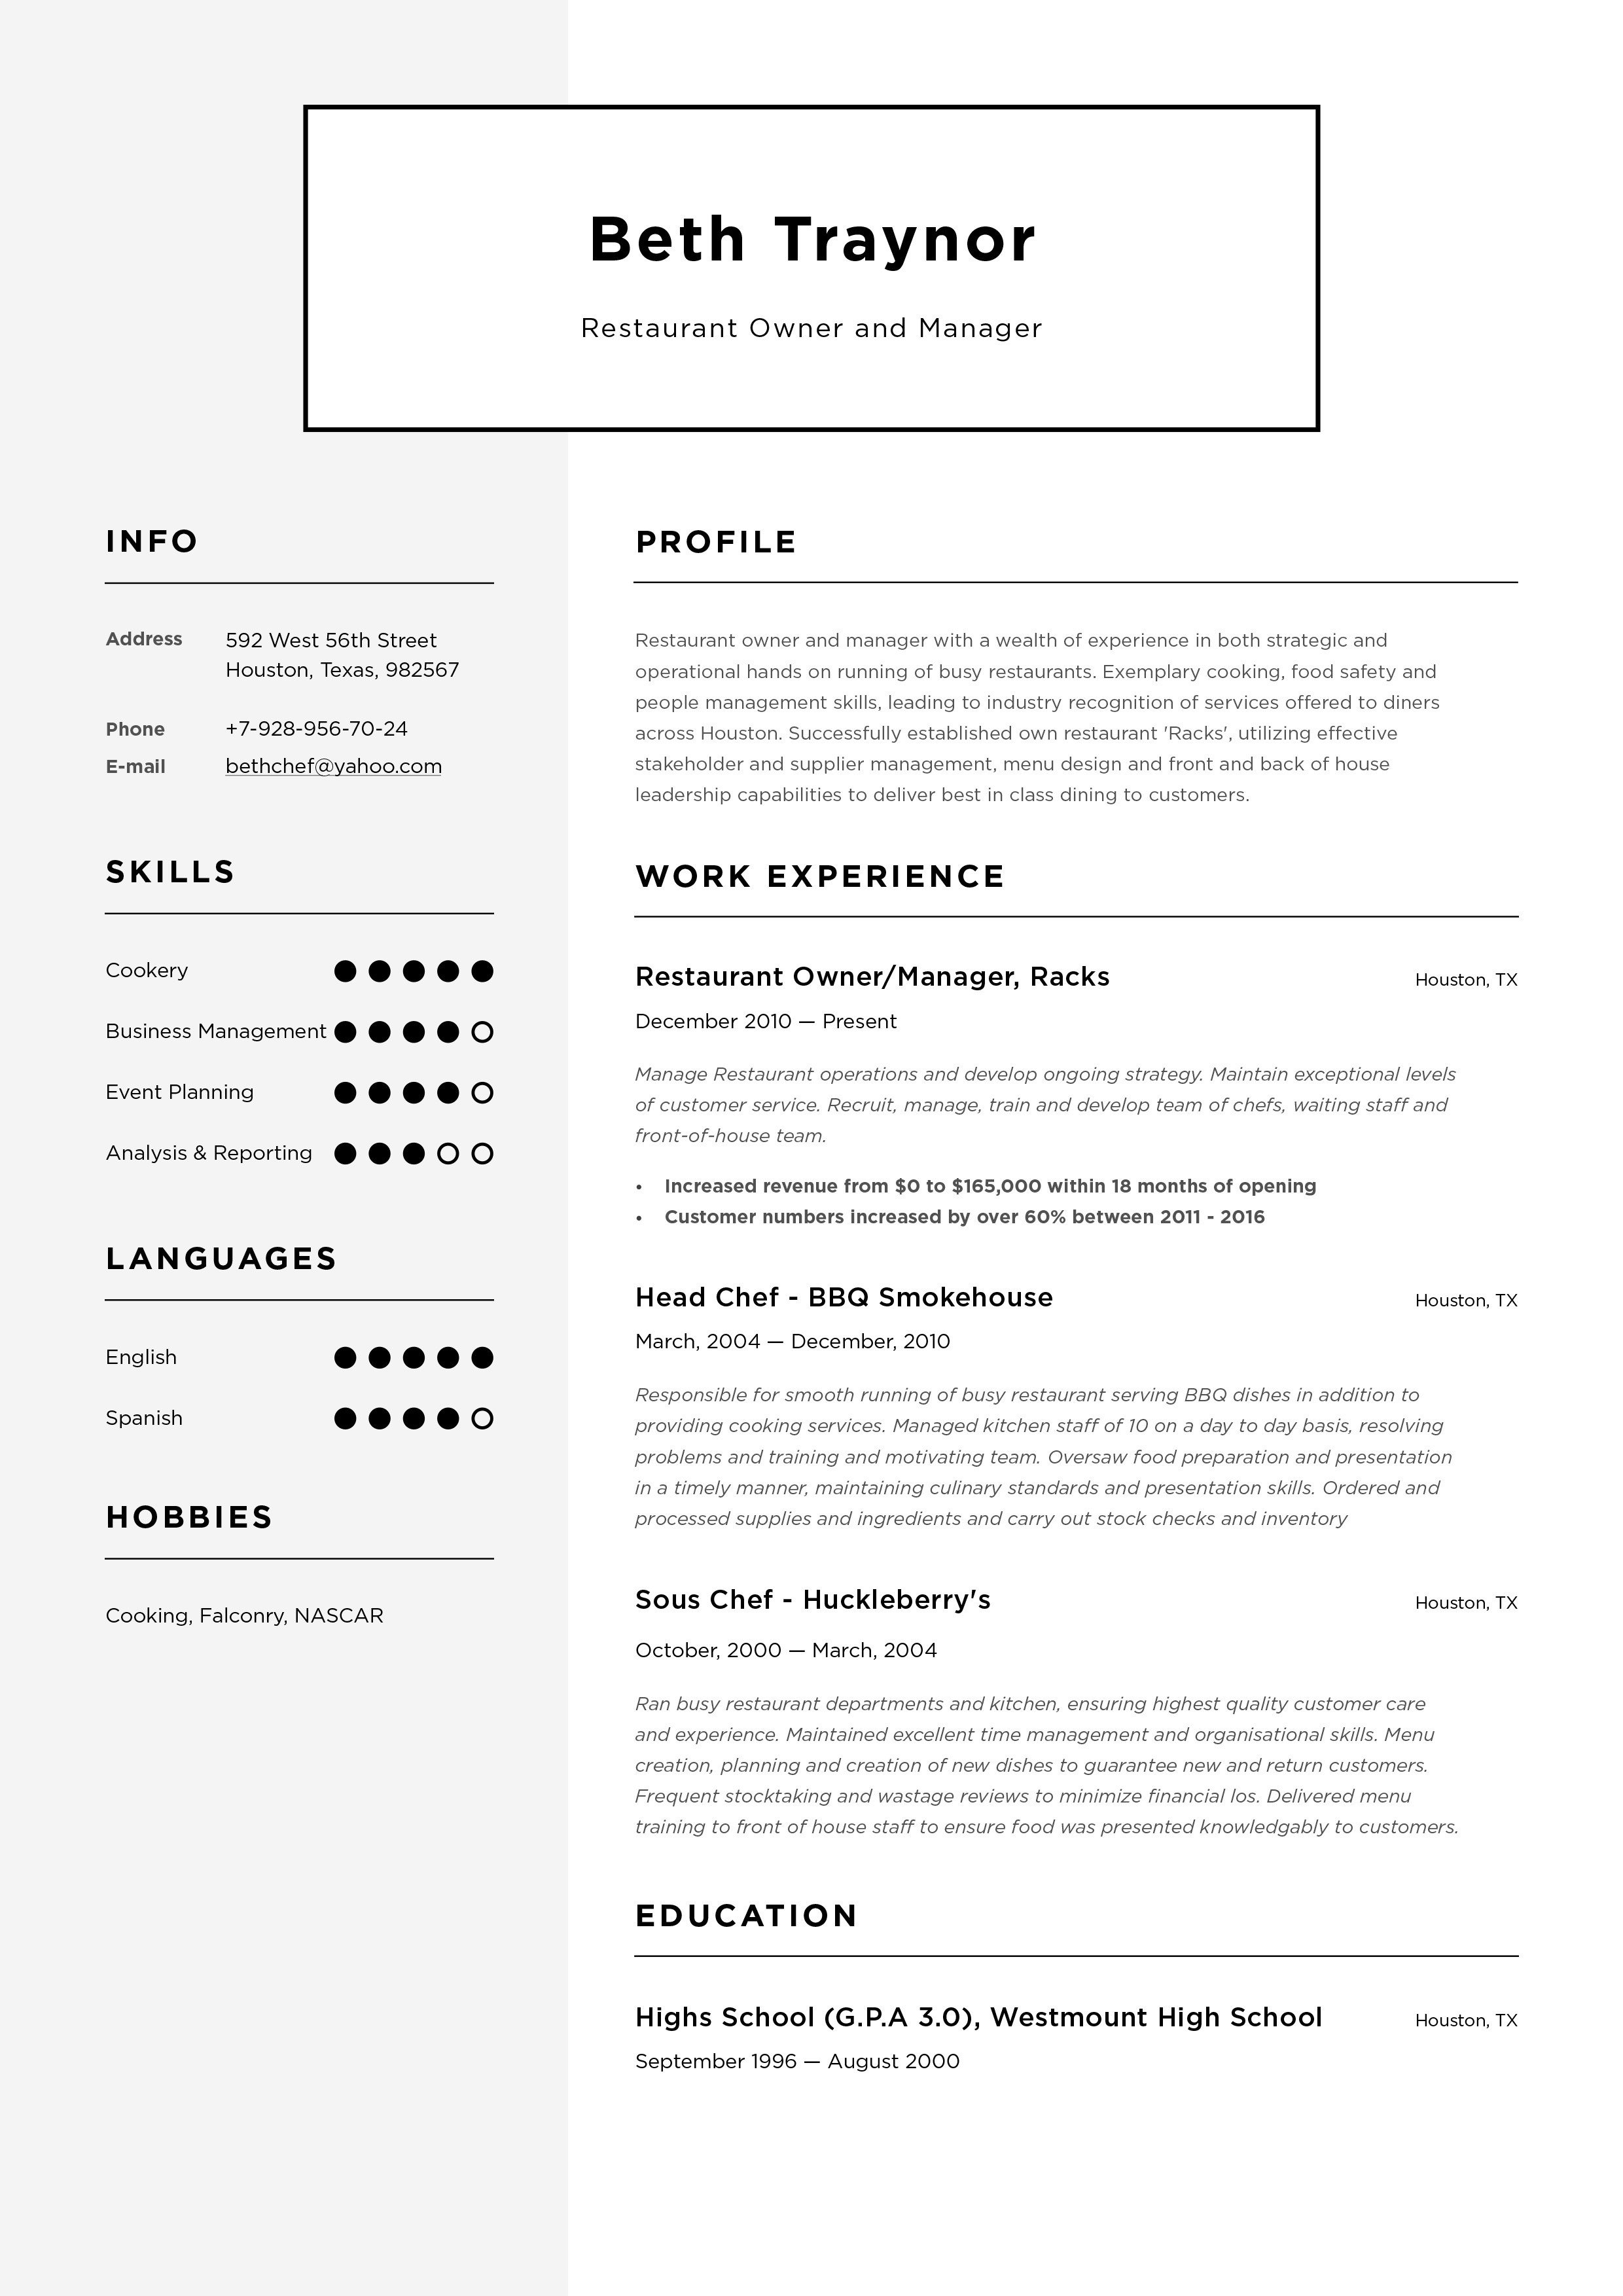 Resume Io Alternatives And Similar Websites And Apps